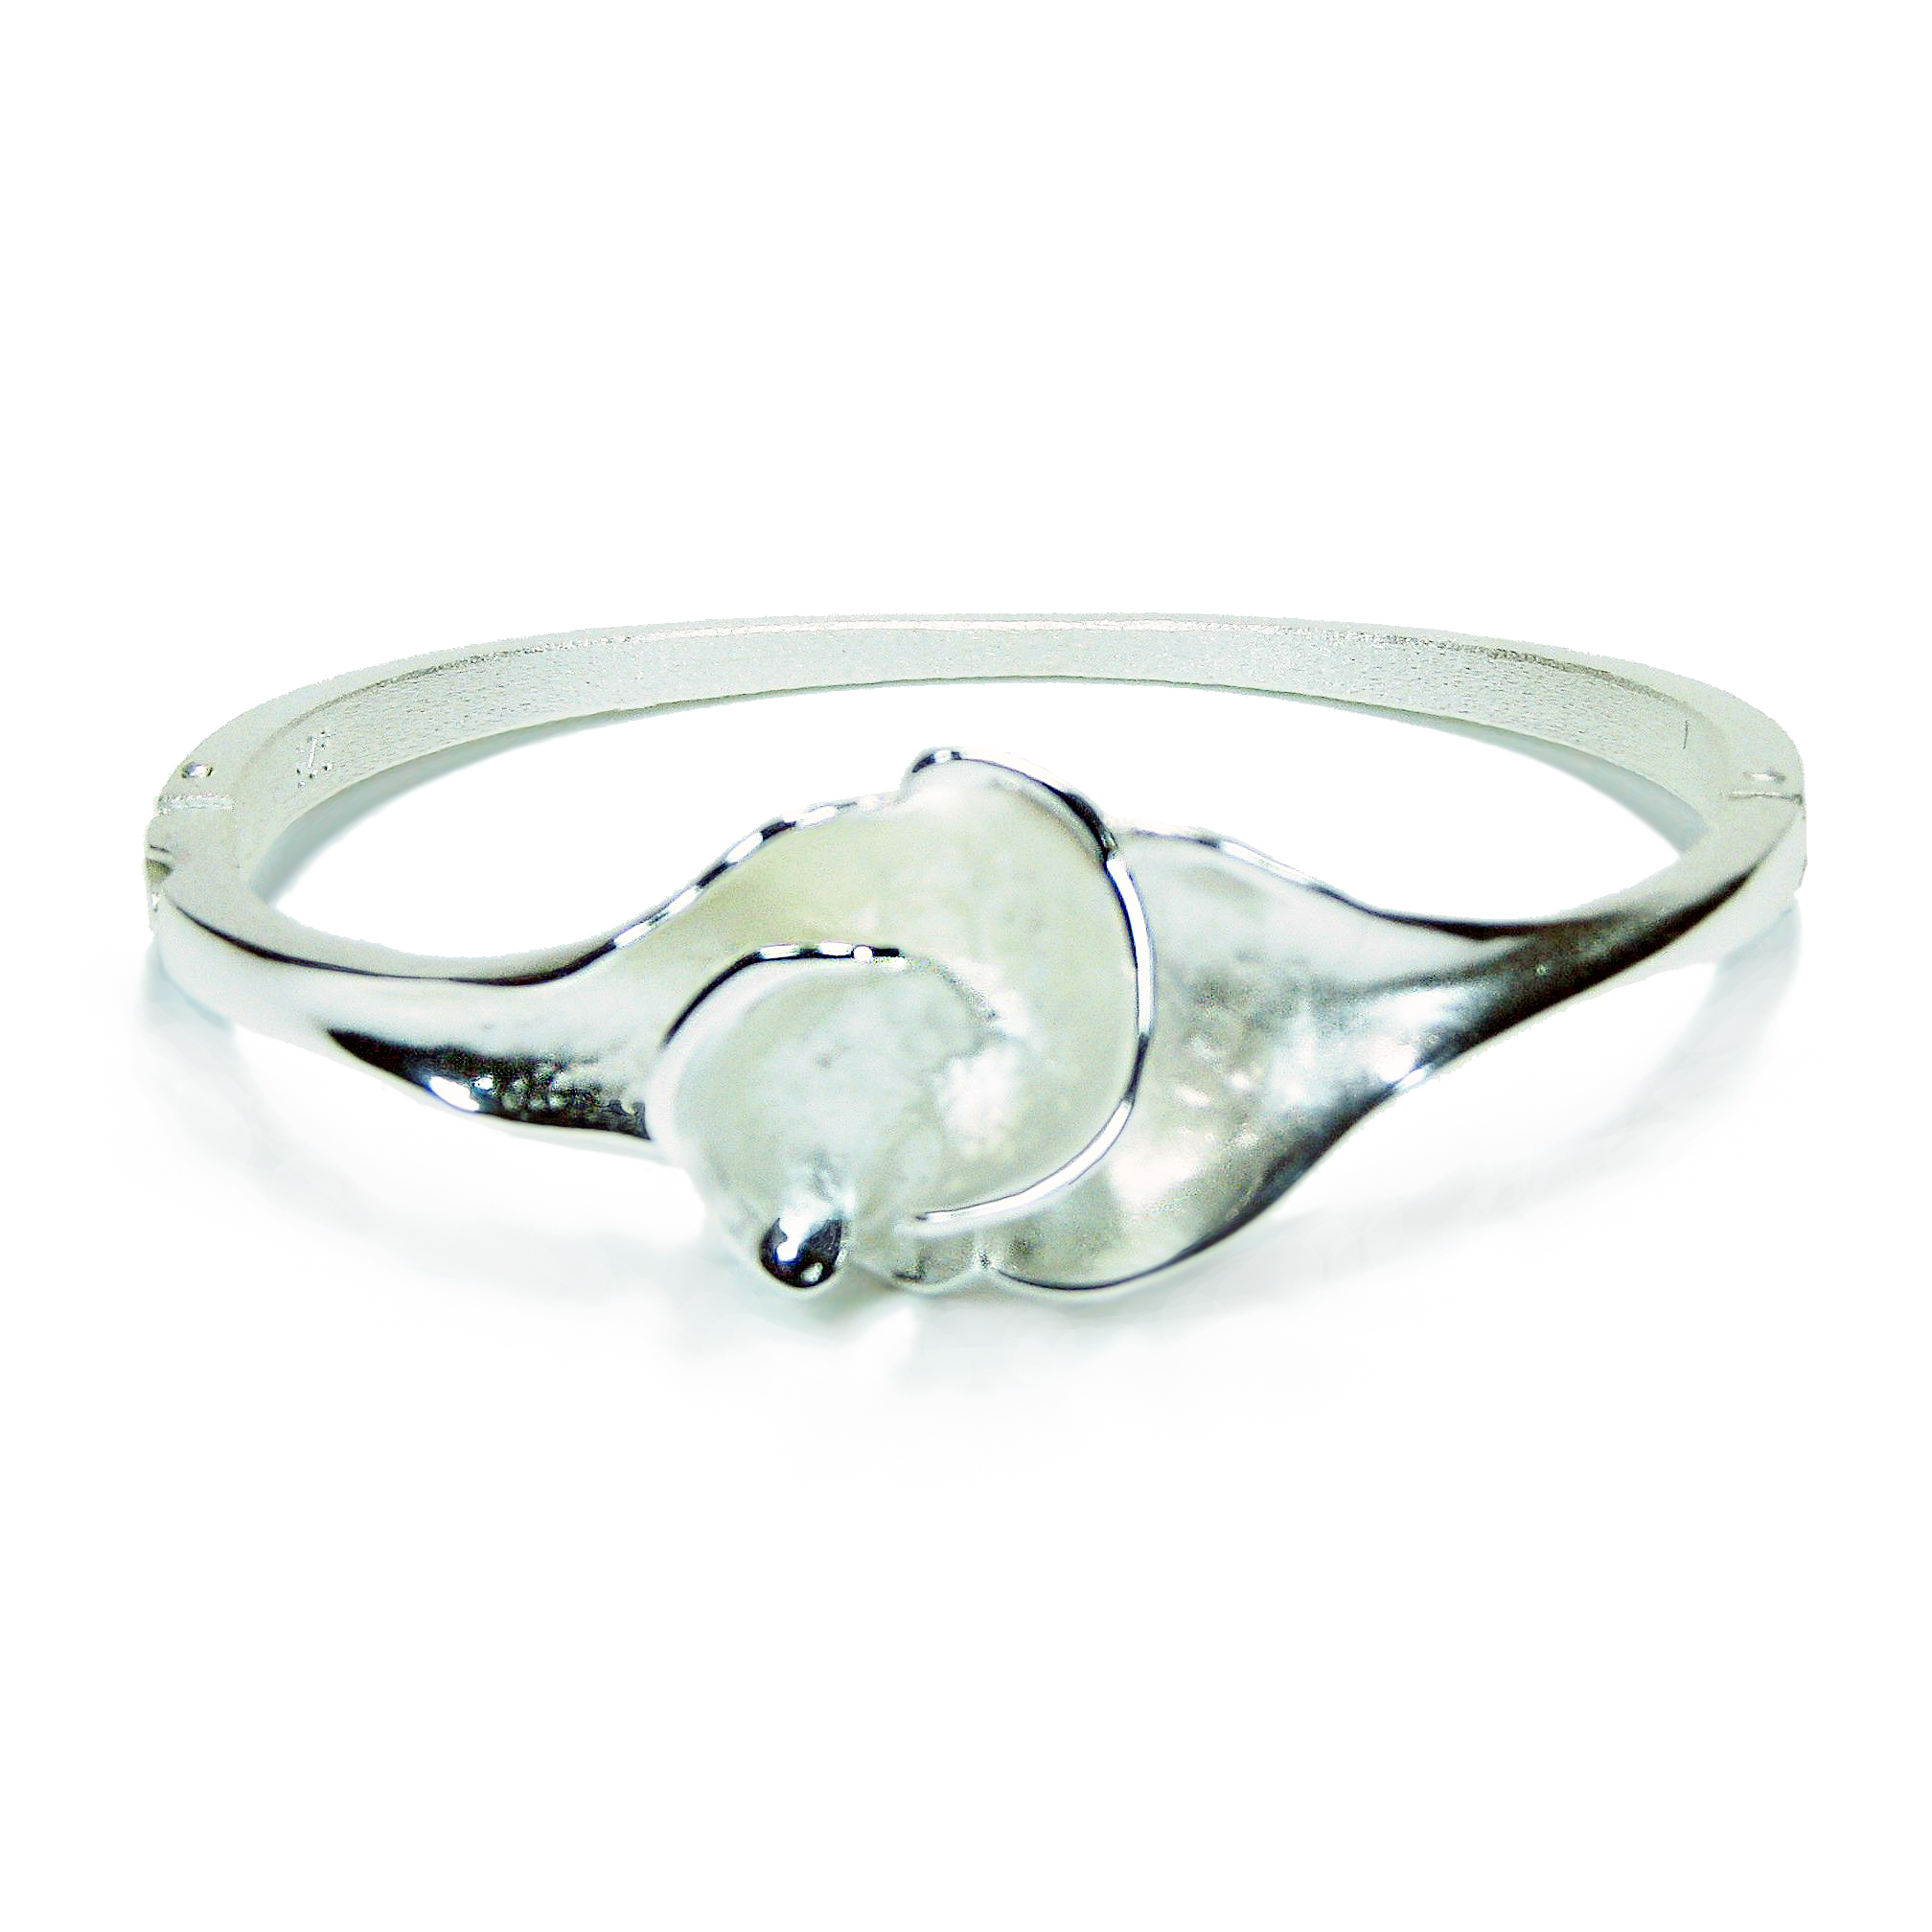 Charisma Small Silver Flower Bangle